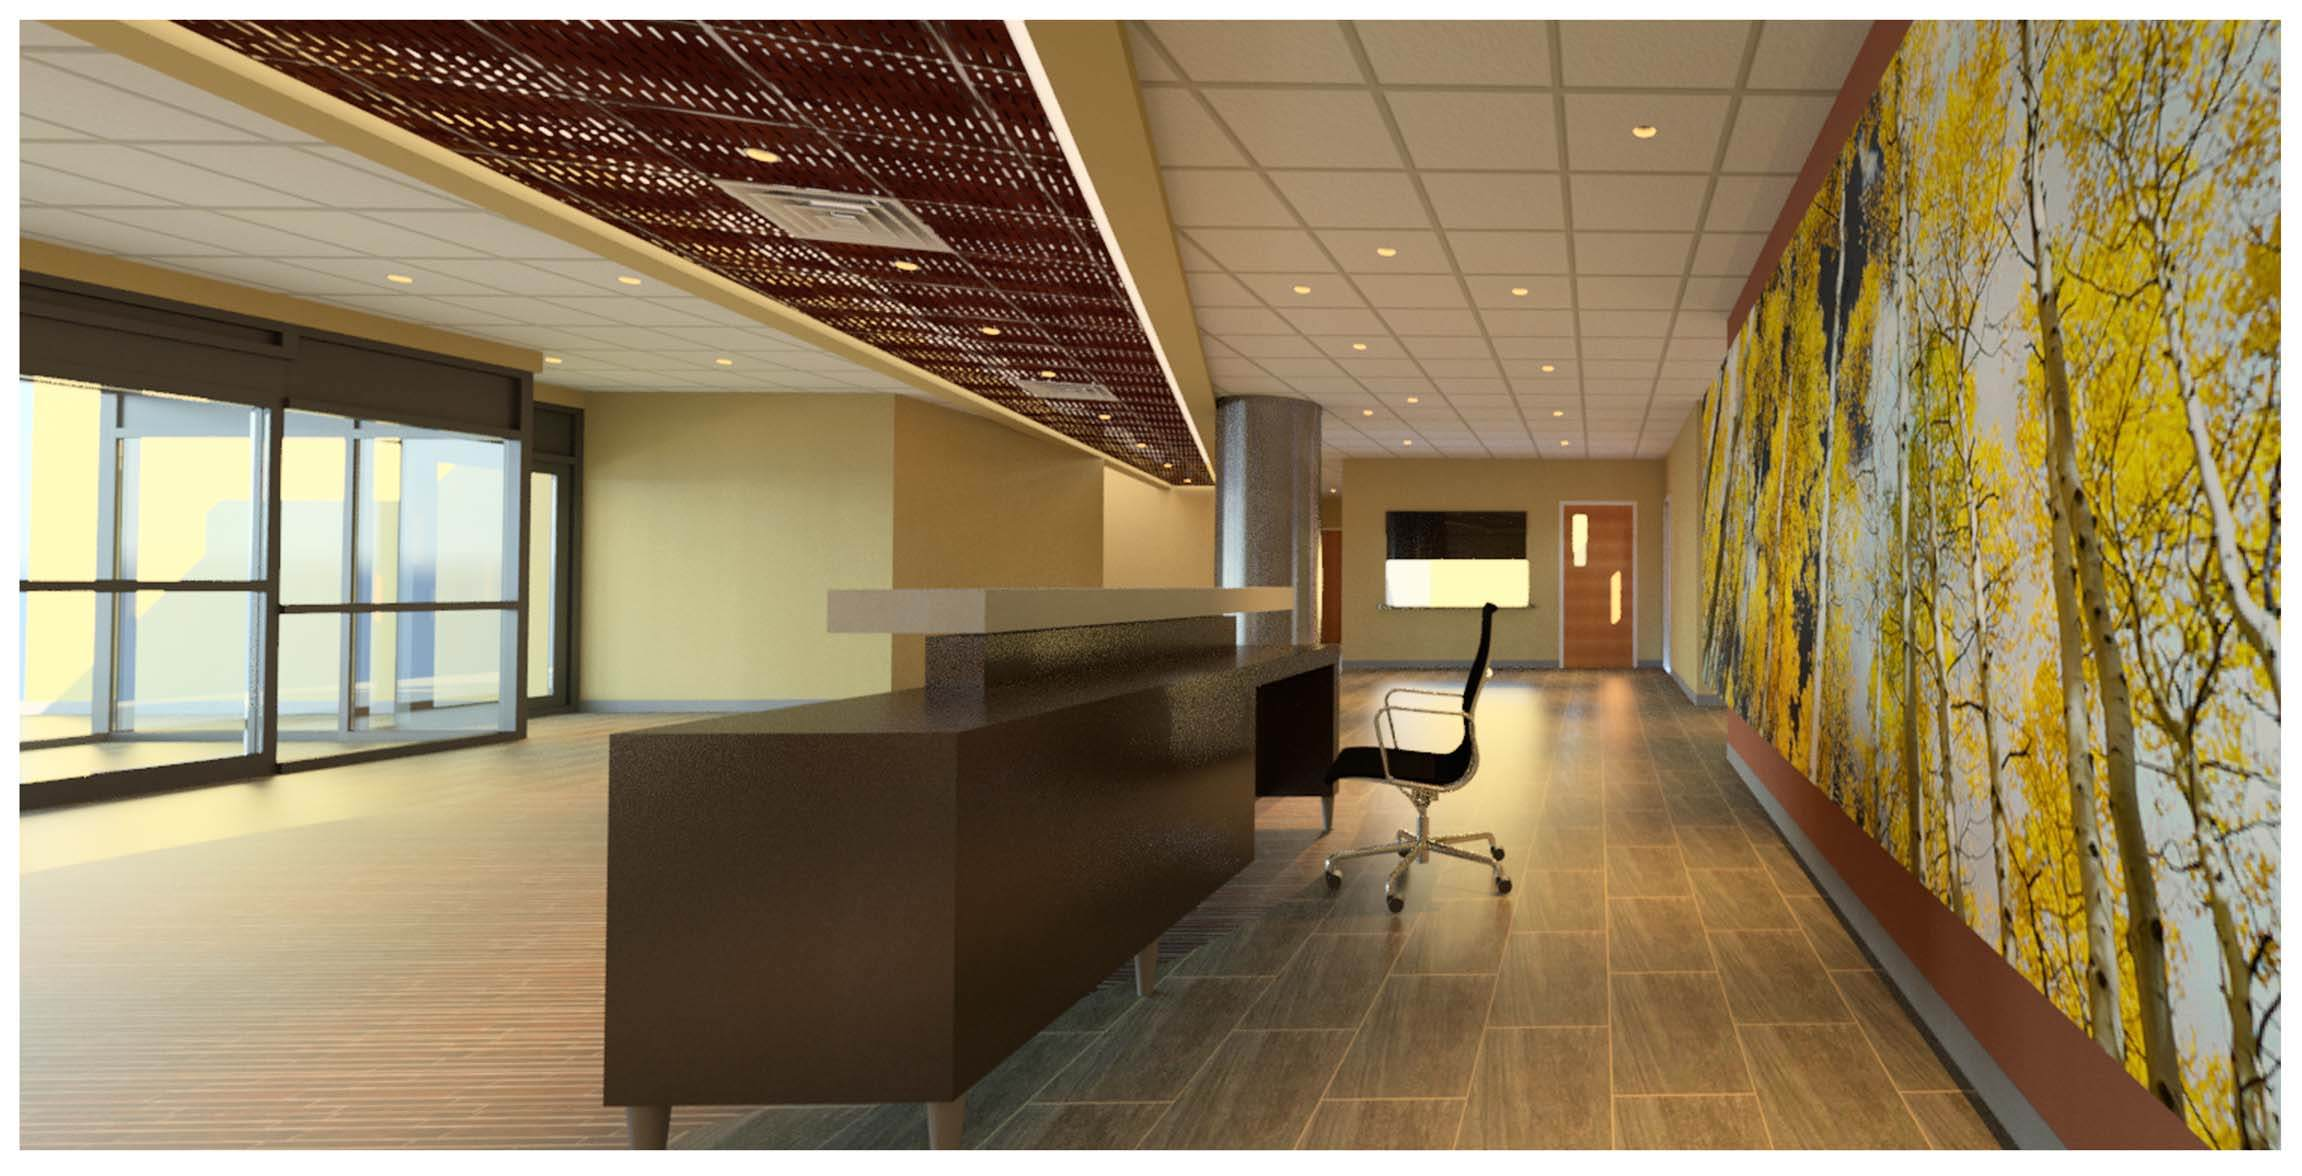 12121 grant st building tenant improvements arcwest for Office design concepts and needs